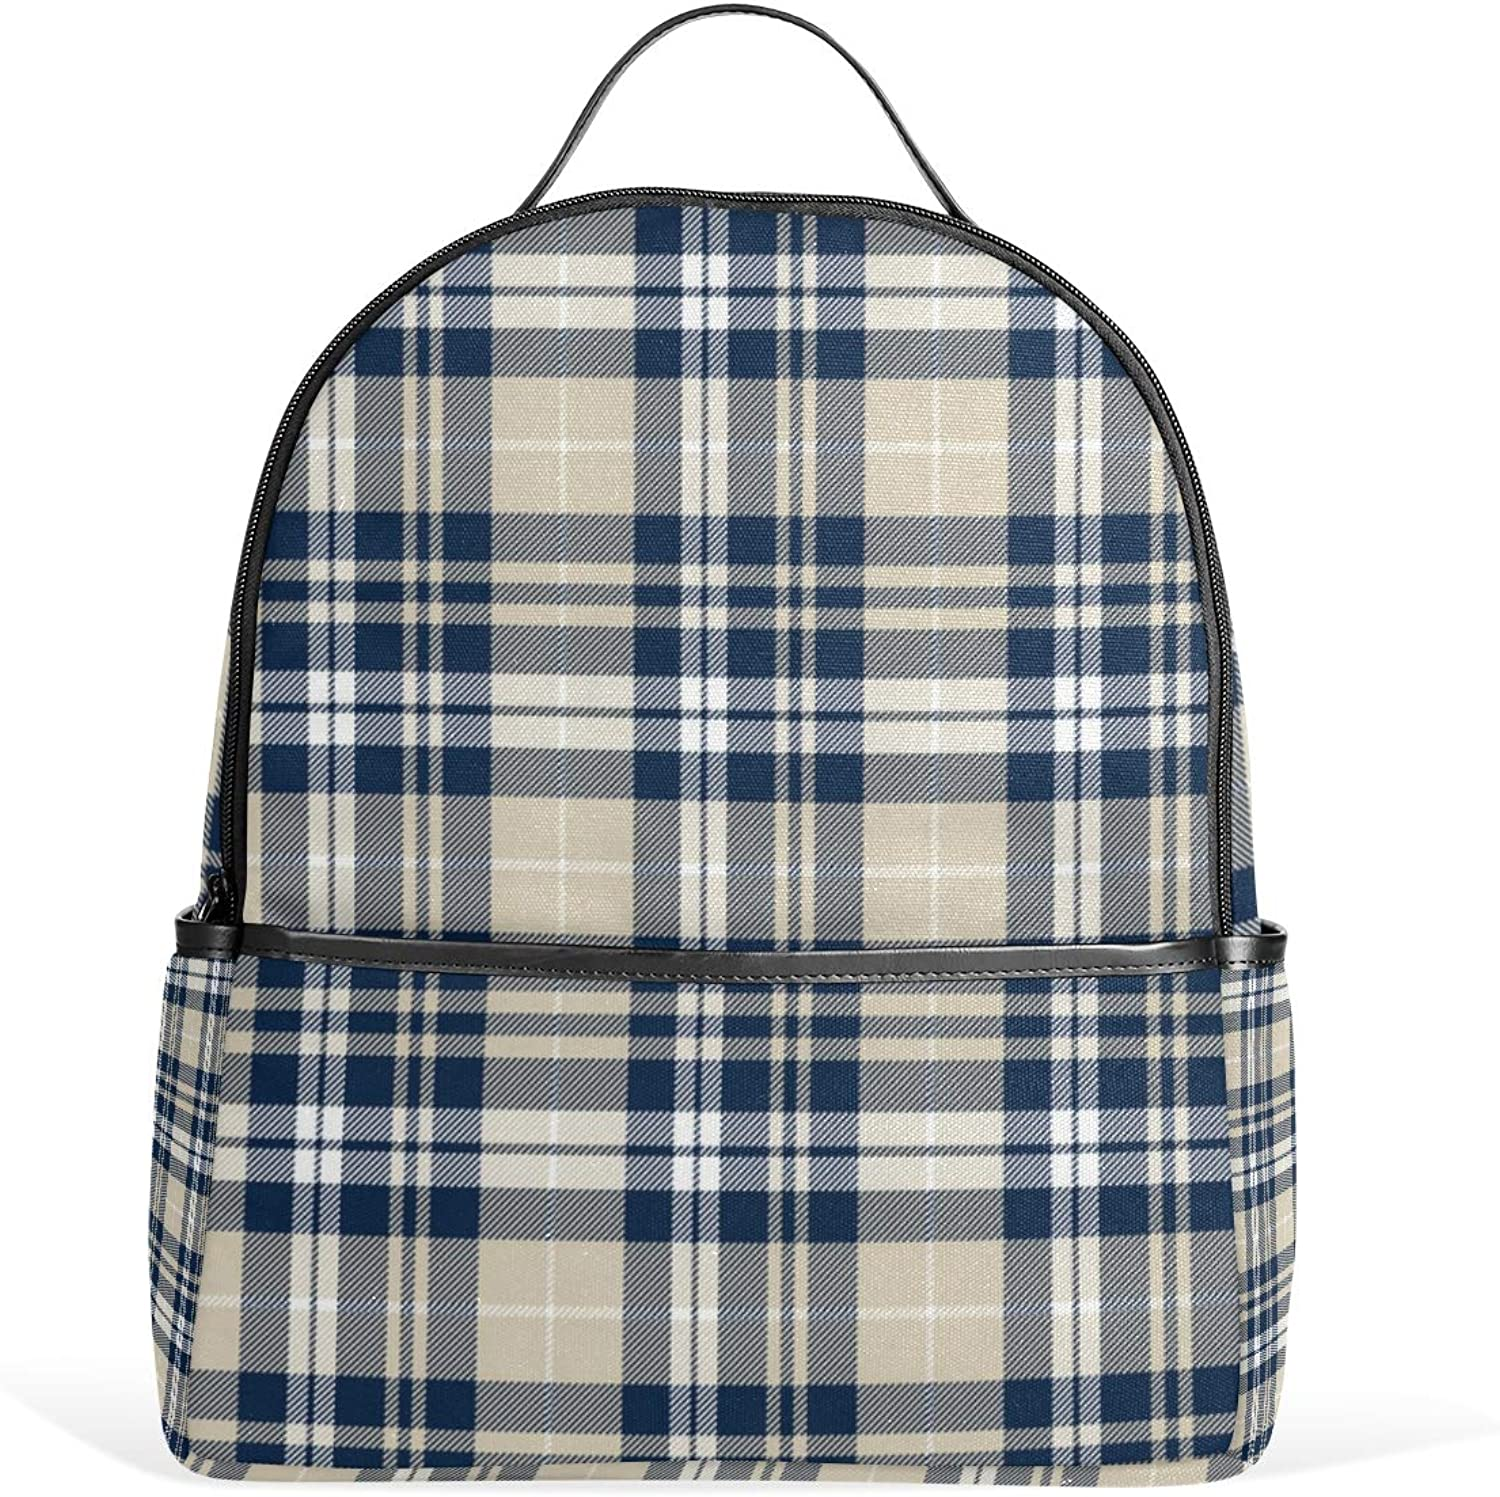 a457024bc145f Fall Plaid Navy Tan White Backpack for Men Women Pack Shoulder Bag ...